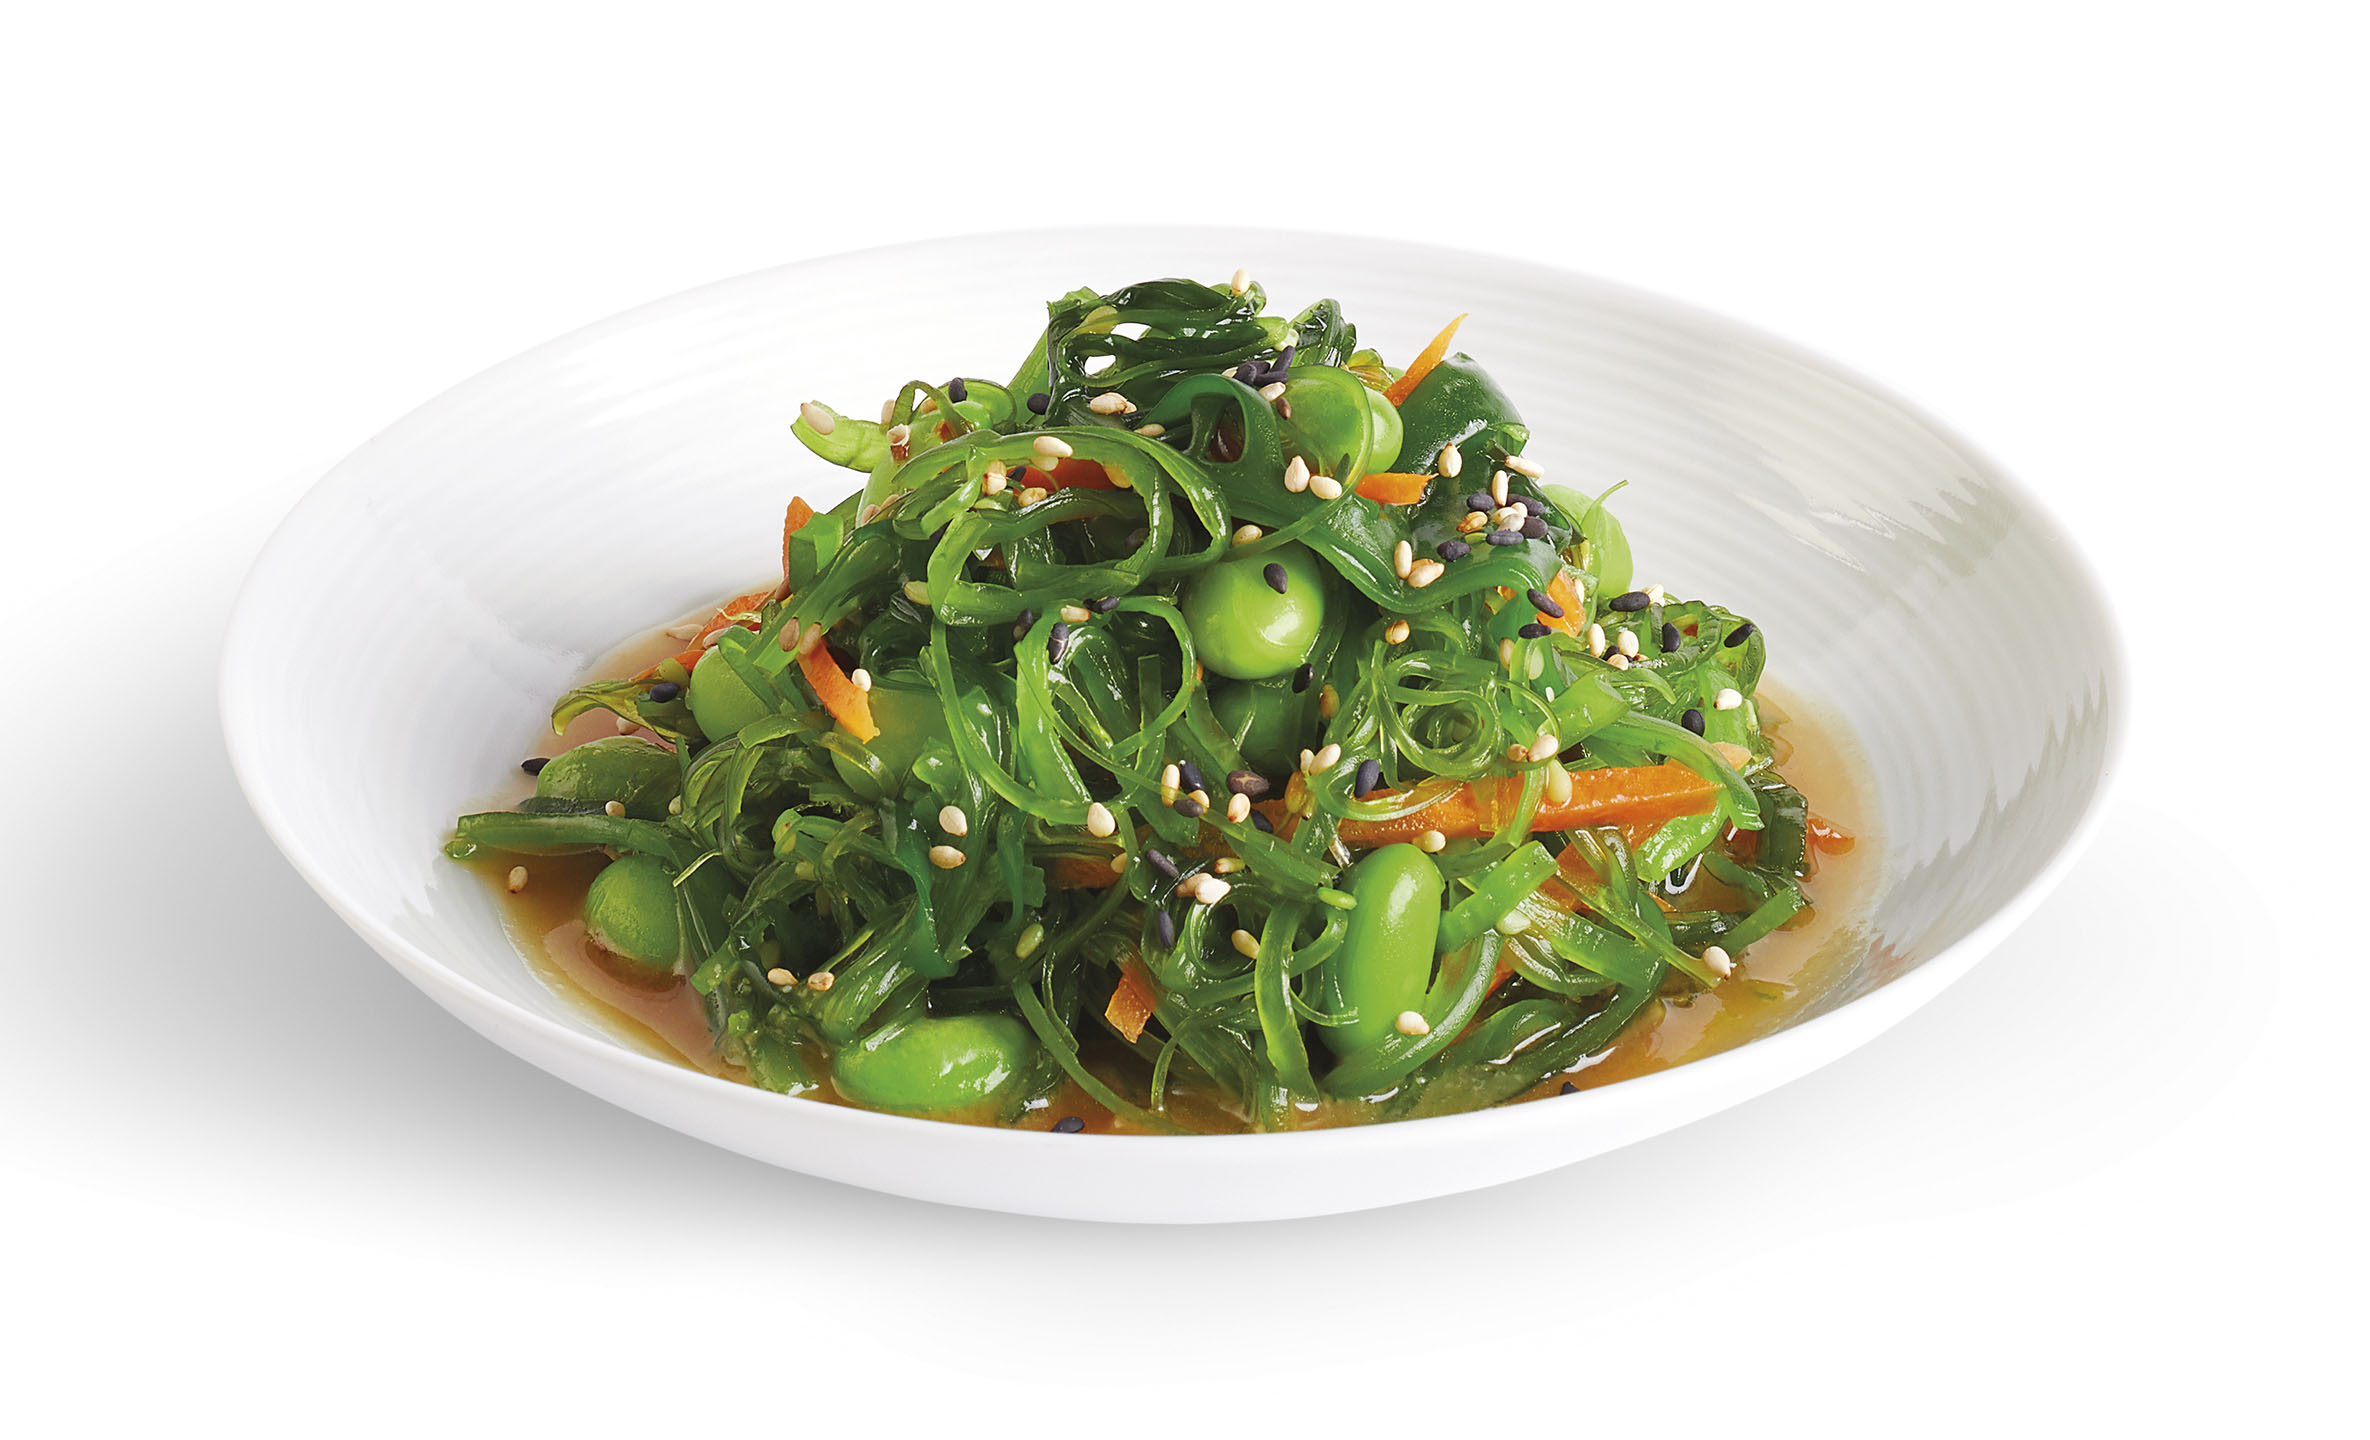 seaweed-health-benefits-top-reasons-why-you-should-add-more-seaweed-to-your-diet